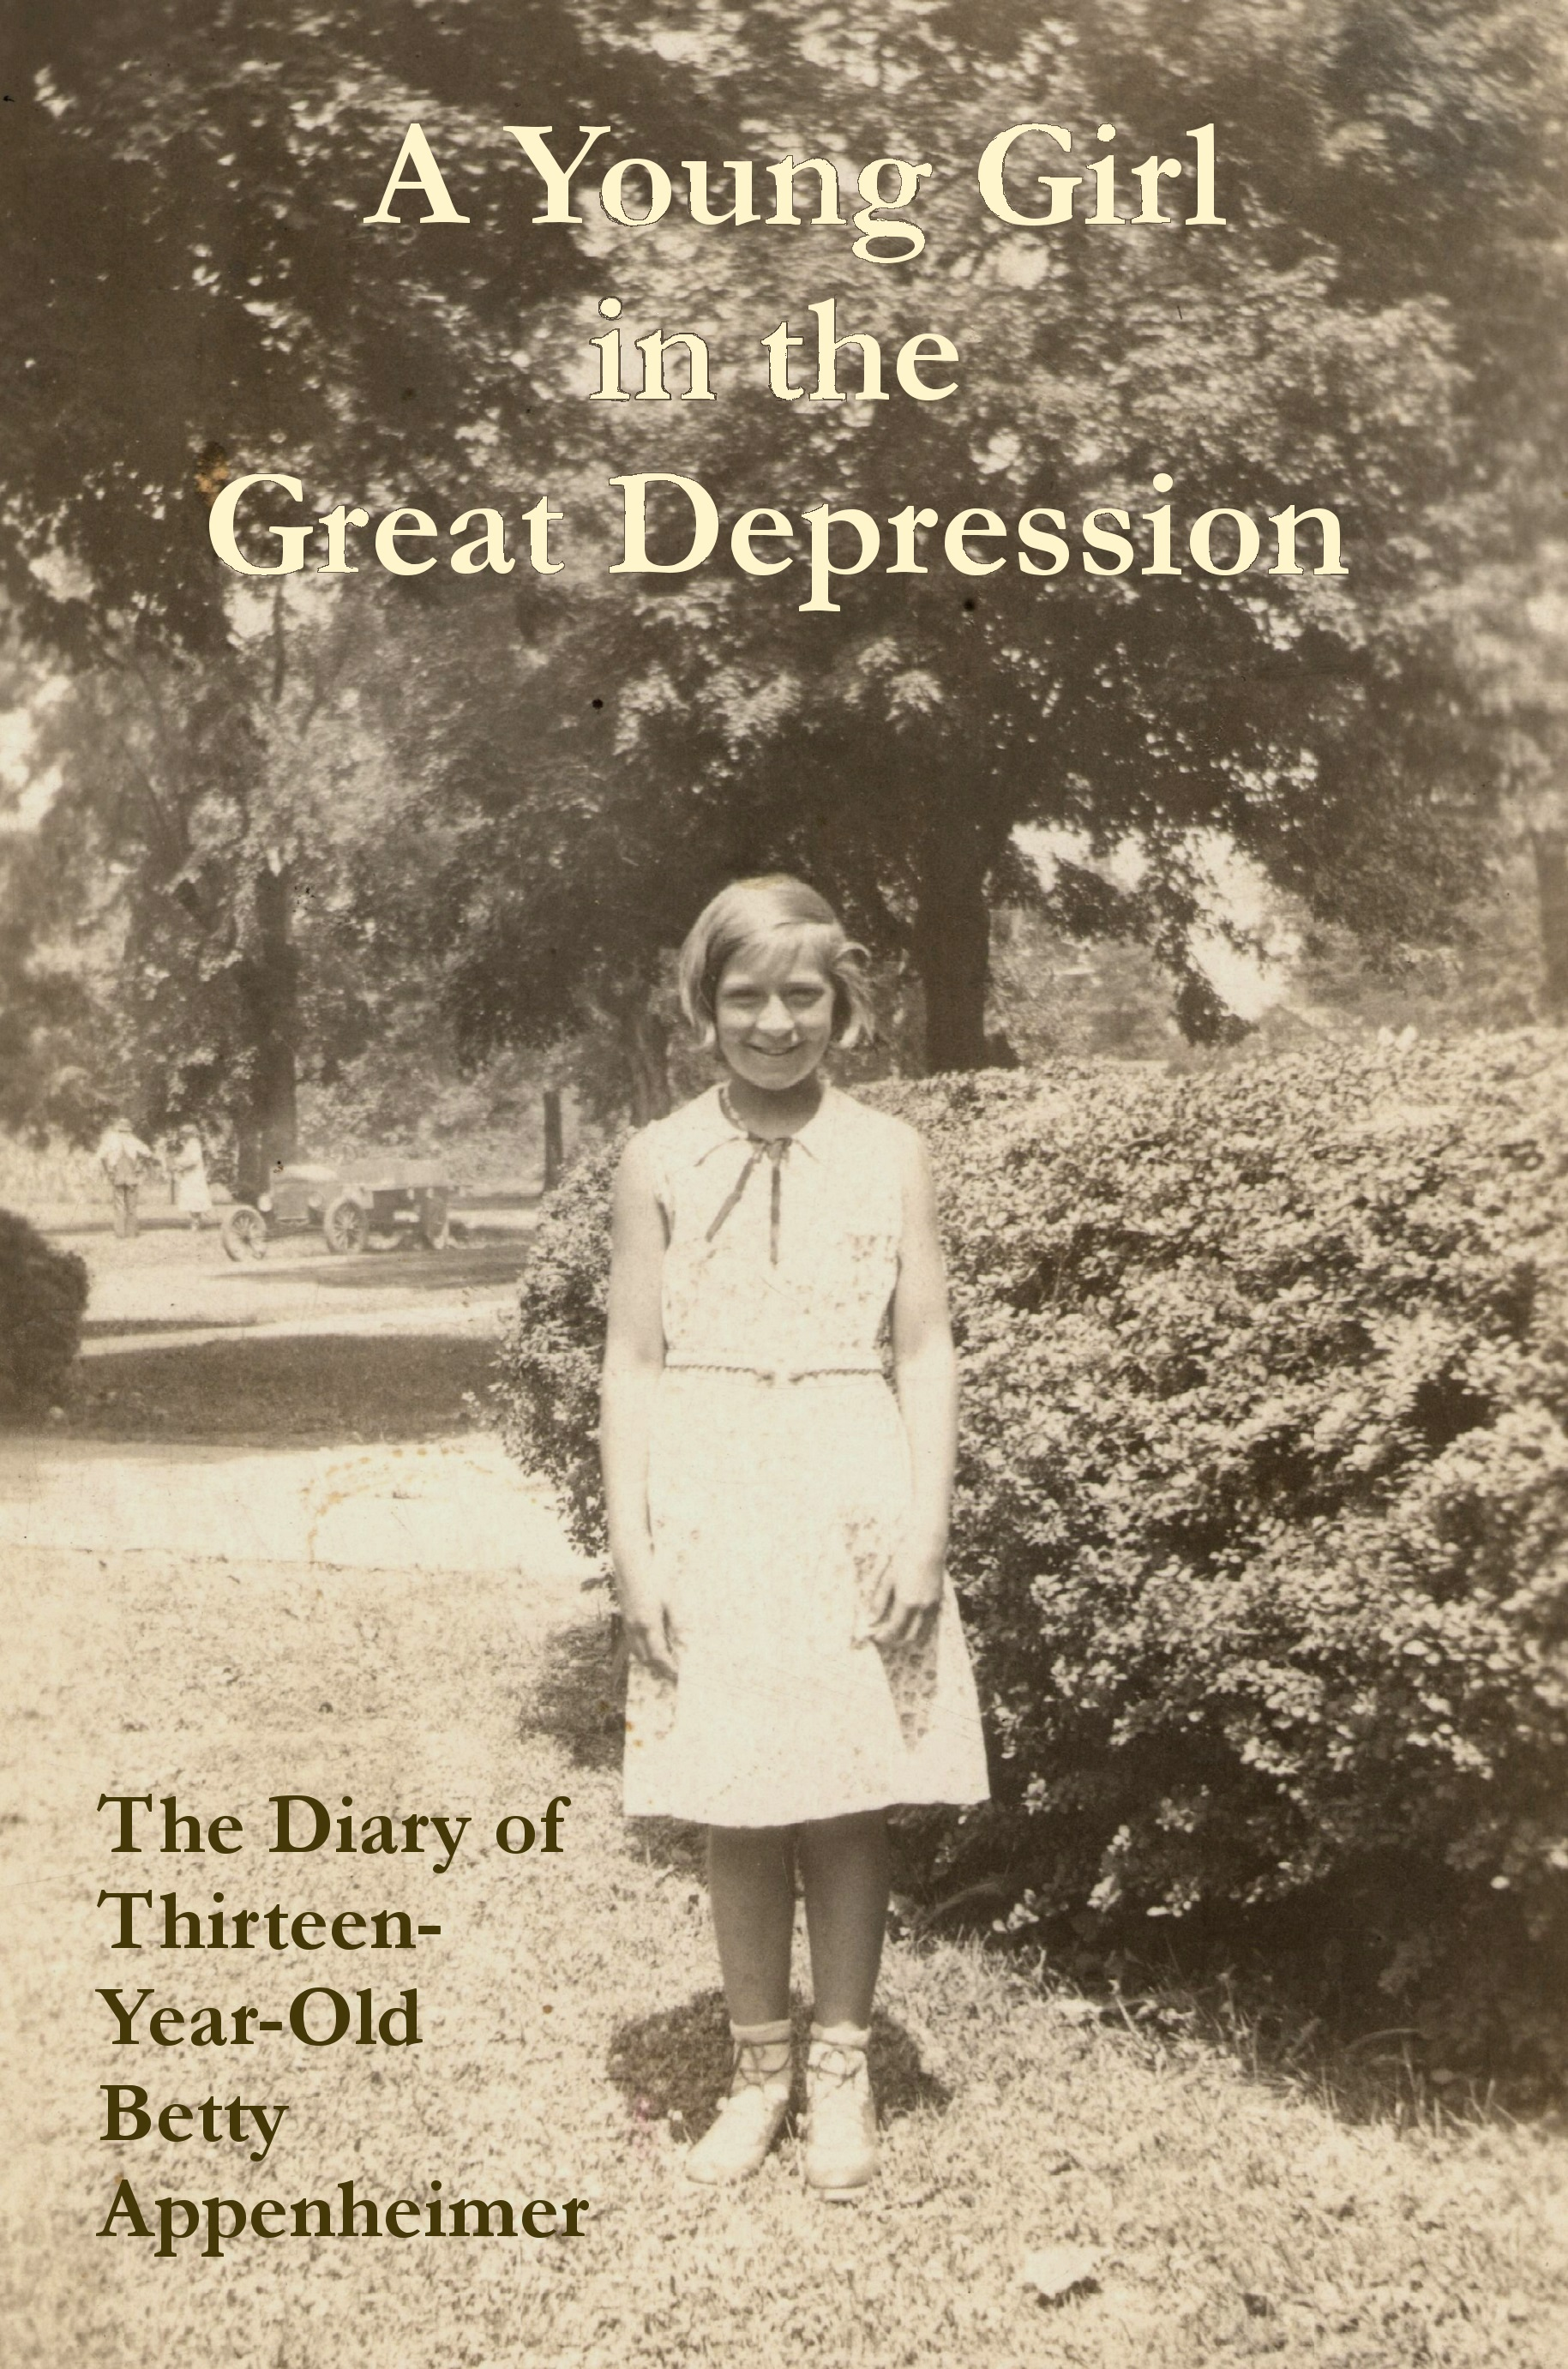 A Young Girl in the Great Depression: The Diary of Thirteen-Year-Old Betty Appenheimer